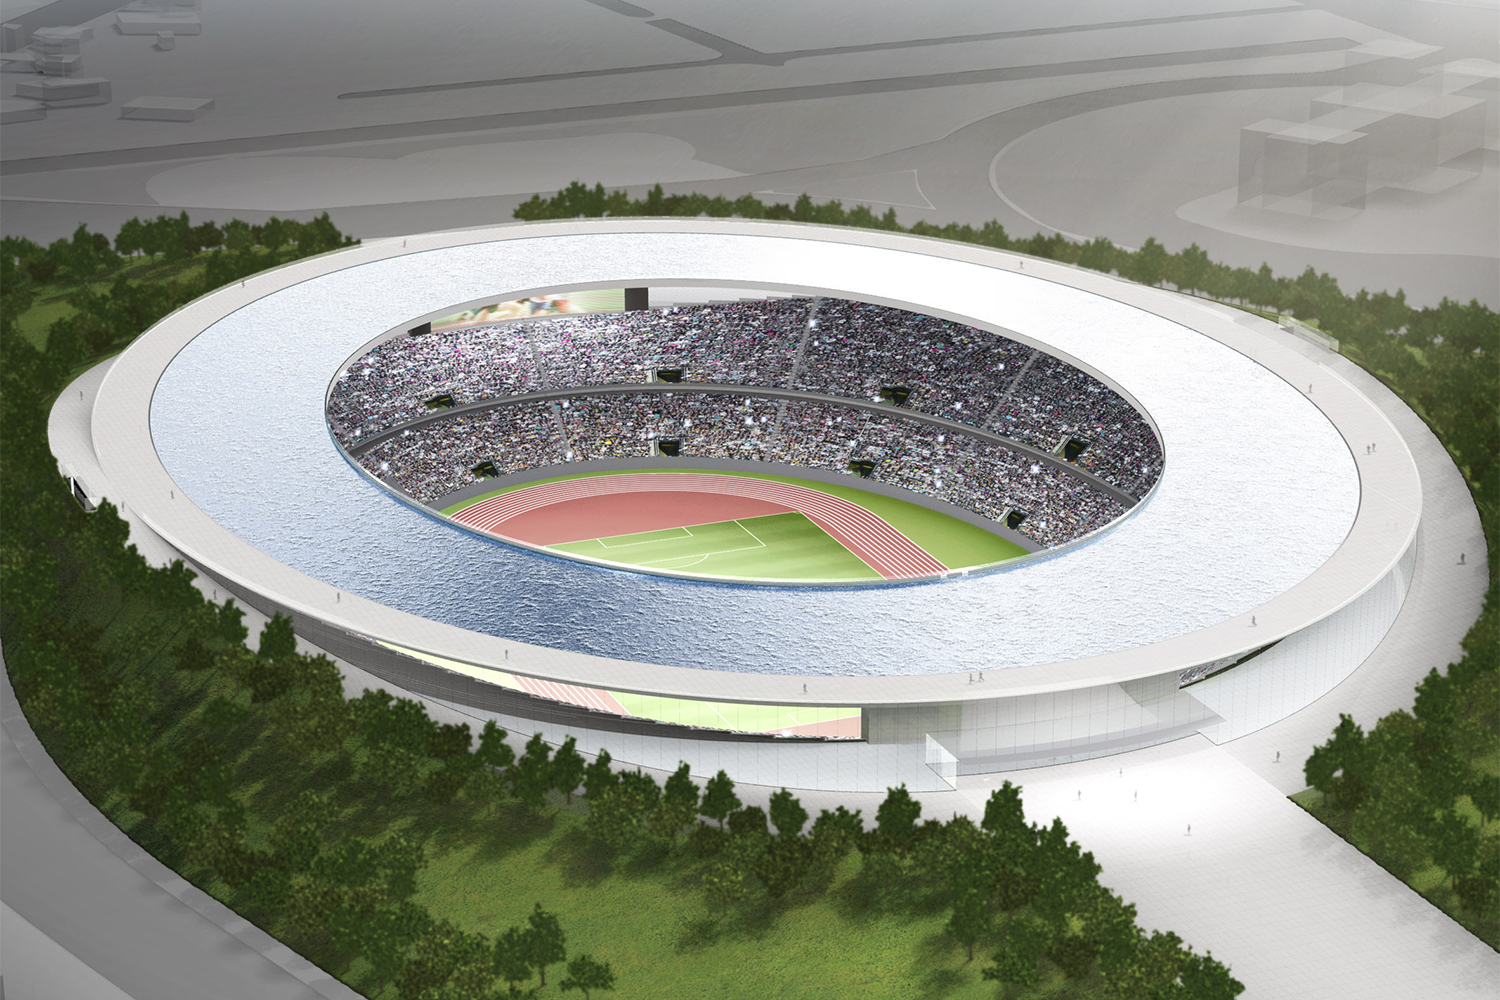 The 2020 Olympic Stadium Could Have Had a Flaming Floating Rooftop Fountain